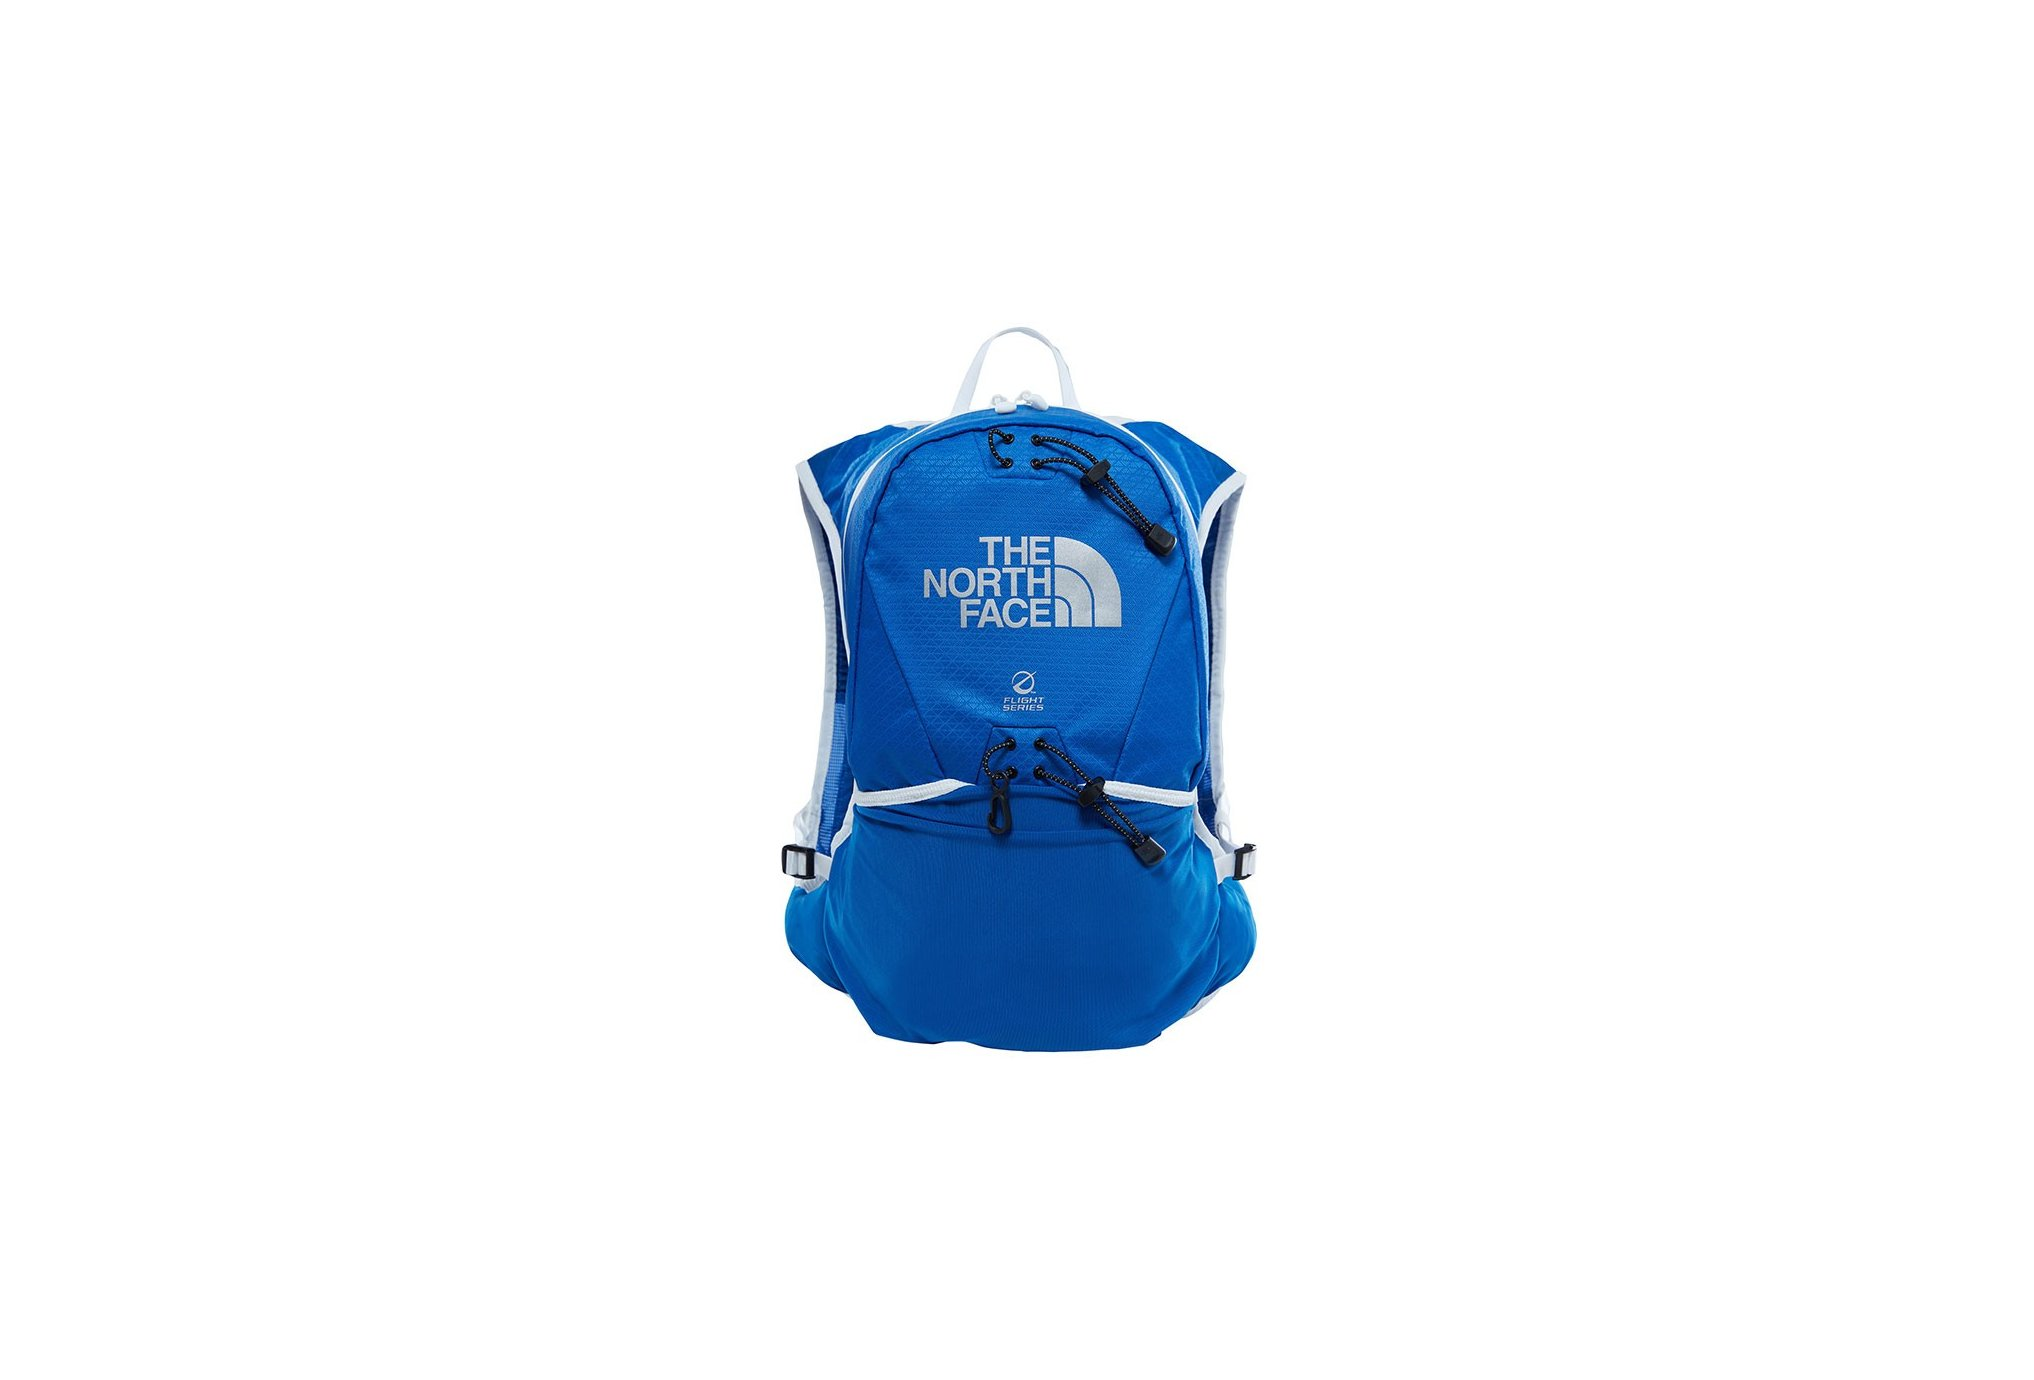 The North Face Flight Race MT 7L Sac hydratation / Gourde